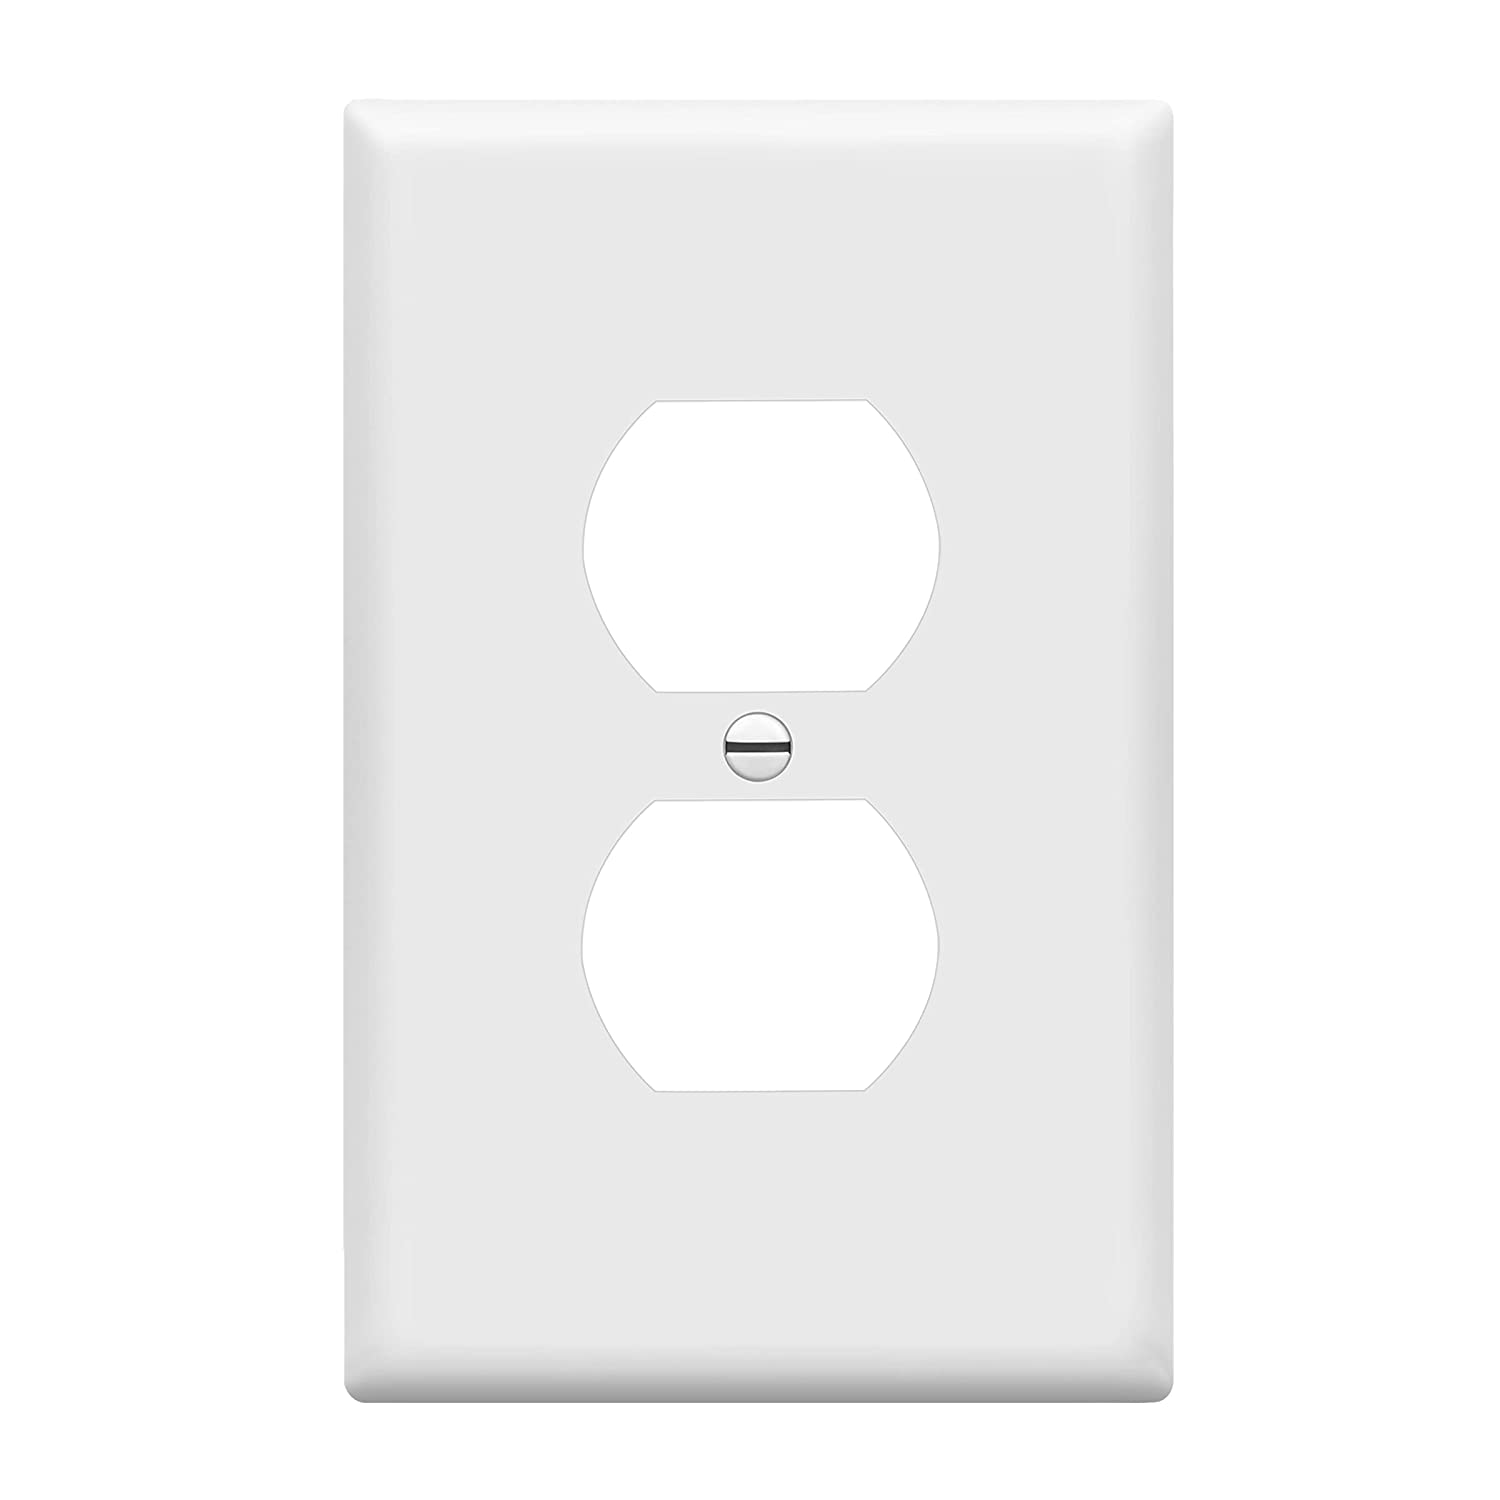 ENERLITES Duplex Receptacle Outlet Wall Plate, Electrical Outlet Cover, Mid-Size Size 1-Gang 4.88